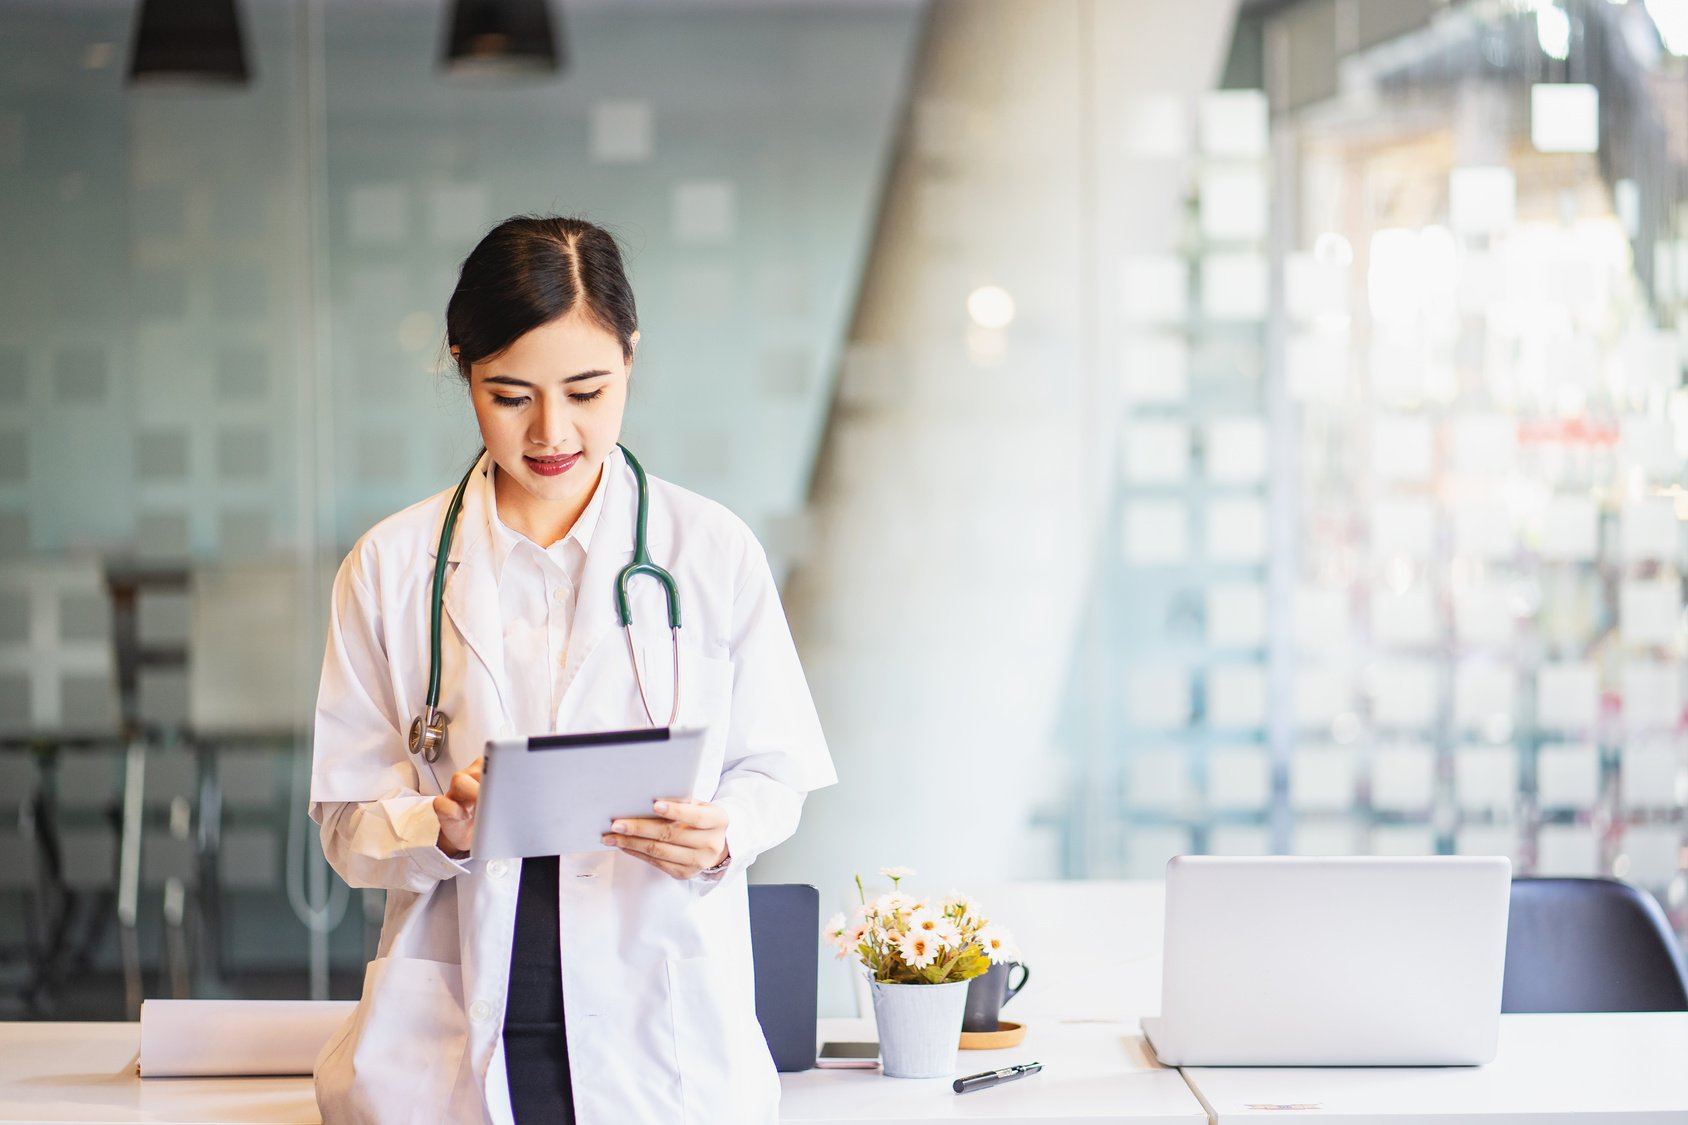 The Guide to Winning with Healthcare Consumers